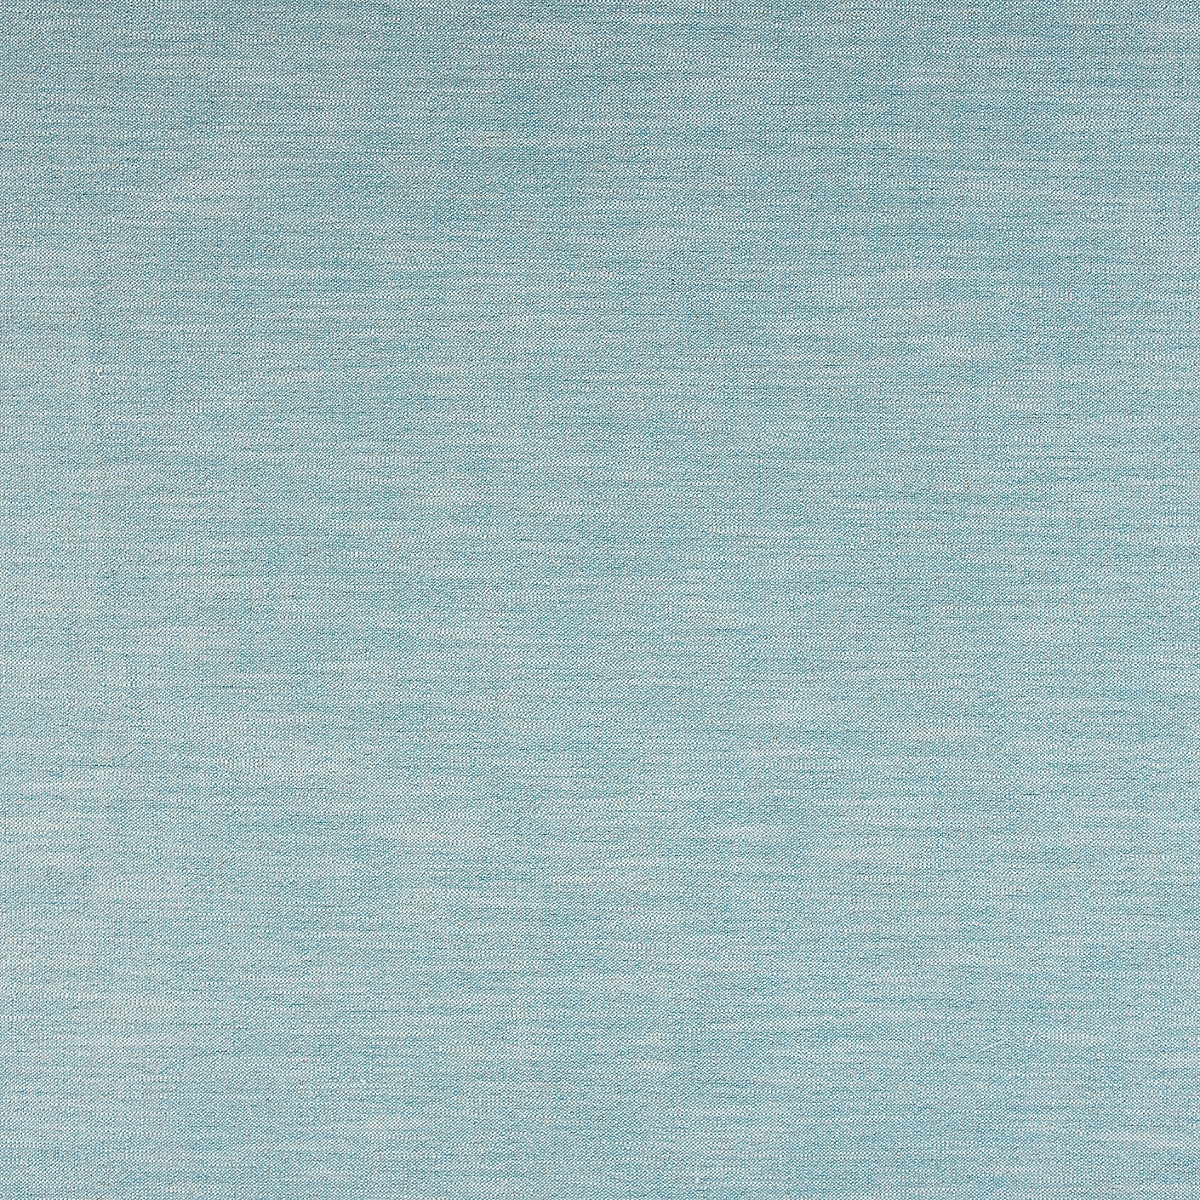 Relaxed Tweed: Surf (fabric yardage)